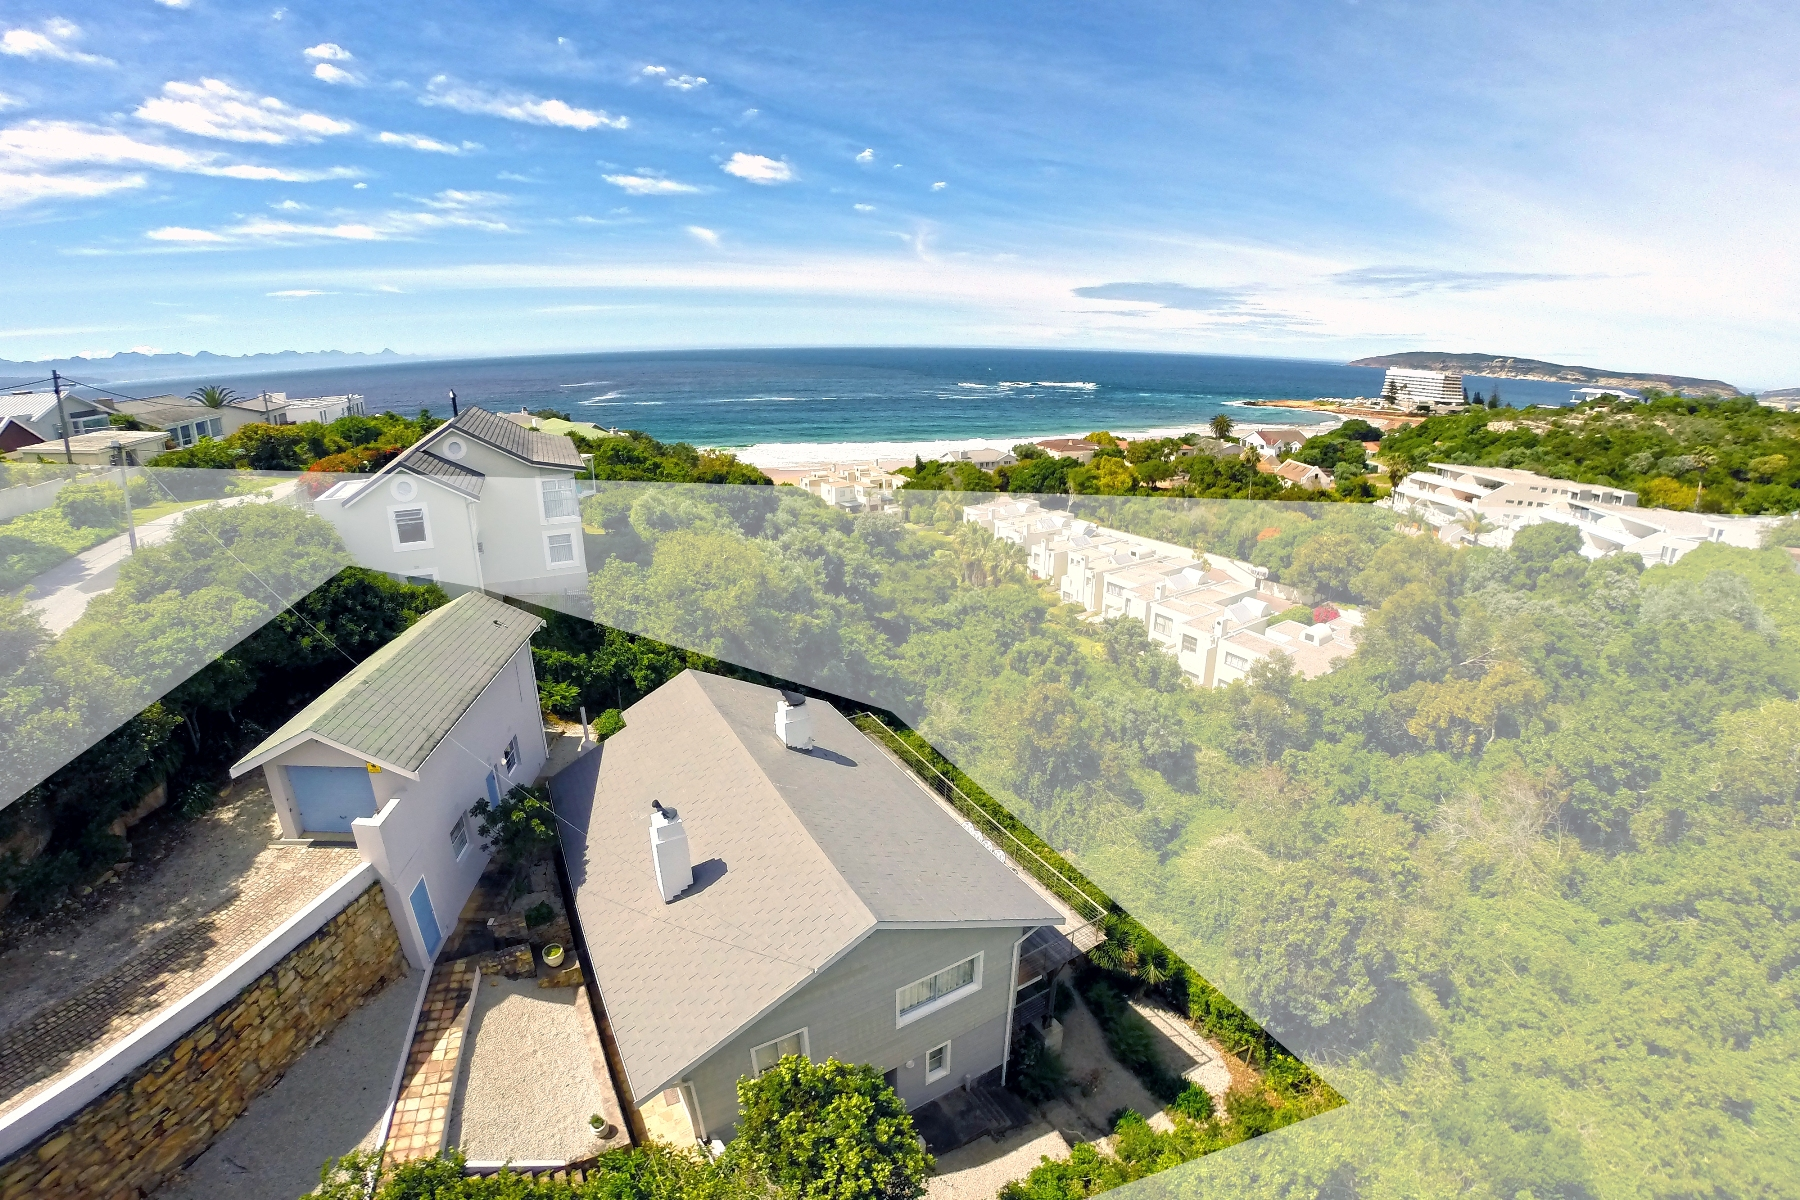 Single Family Home for Sale at Old Plett with Excellent Sea Views Plettenberg Bay, Western Cape, 6600 South Africa